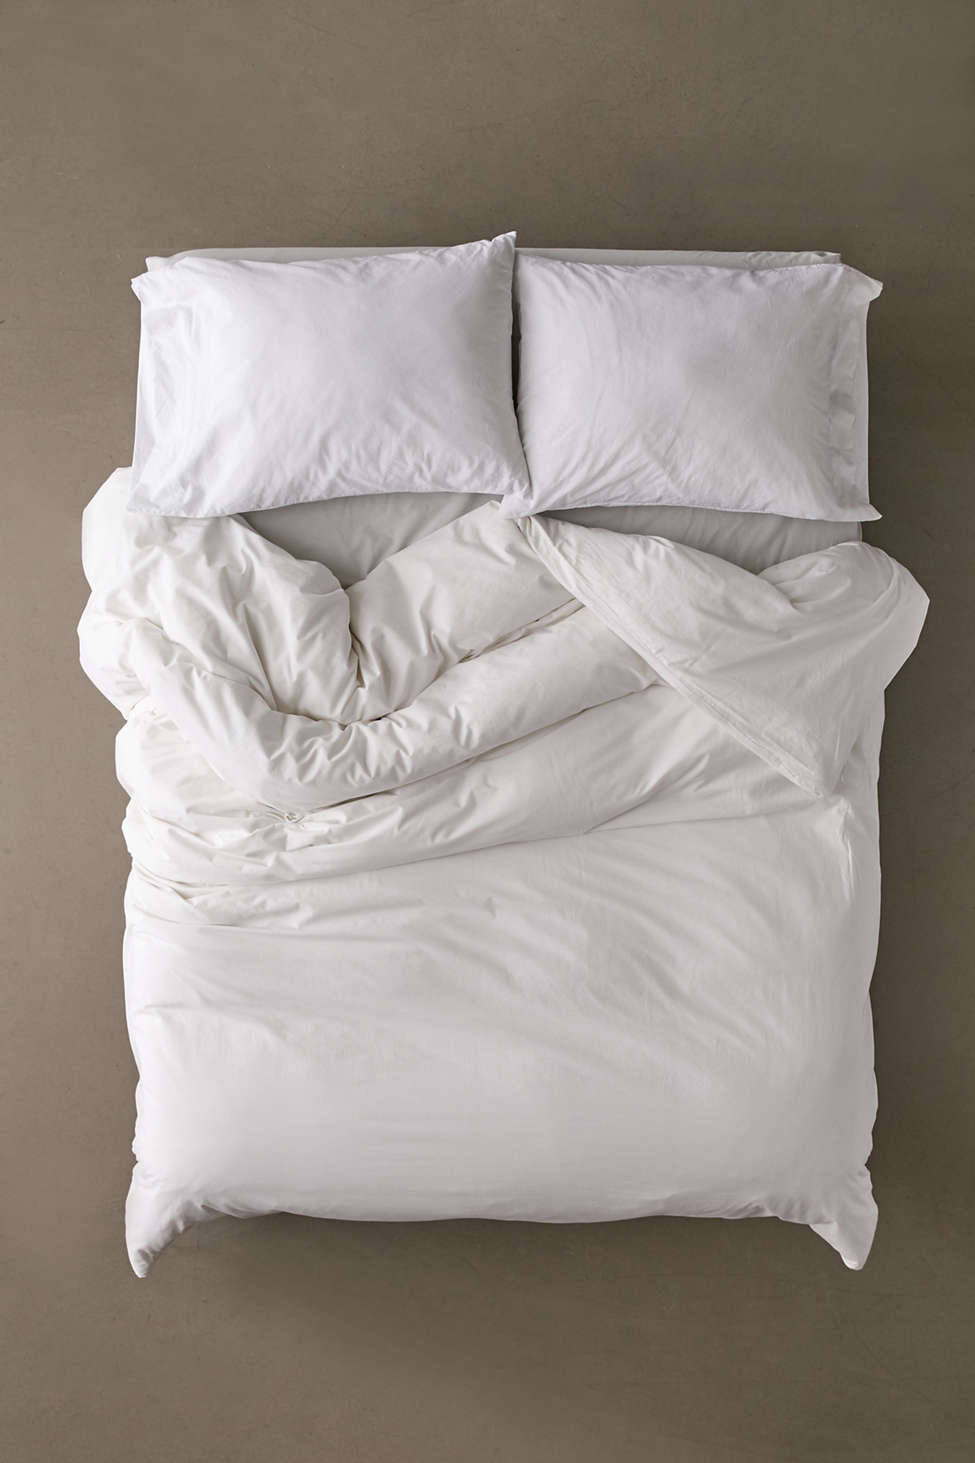 Slide View: 2: Washed Cotton Duvet Cover